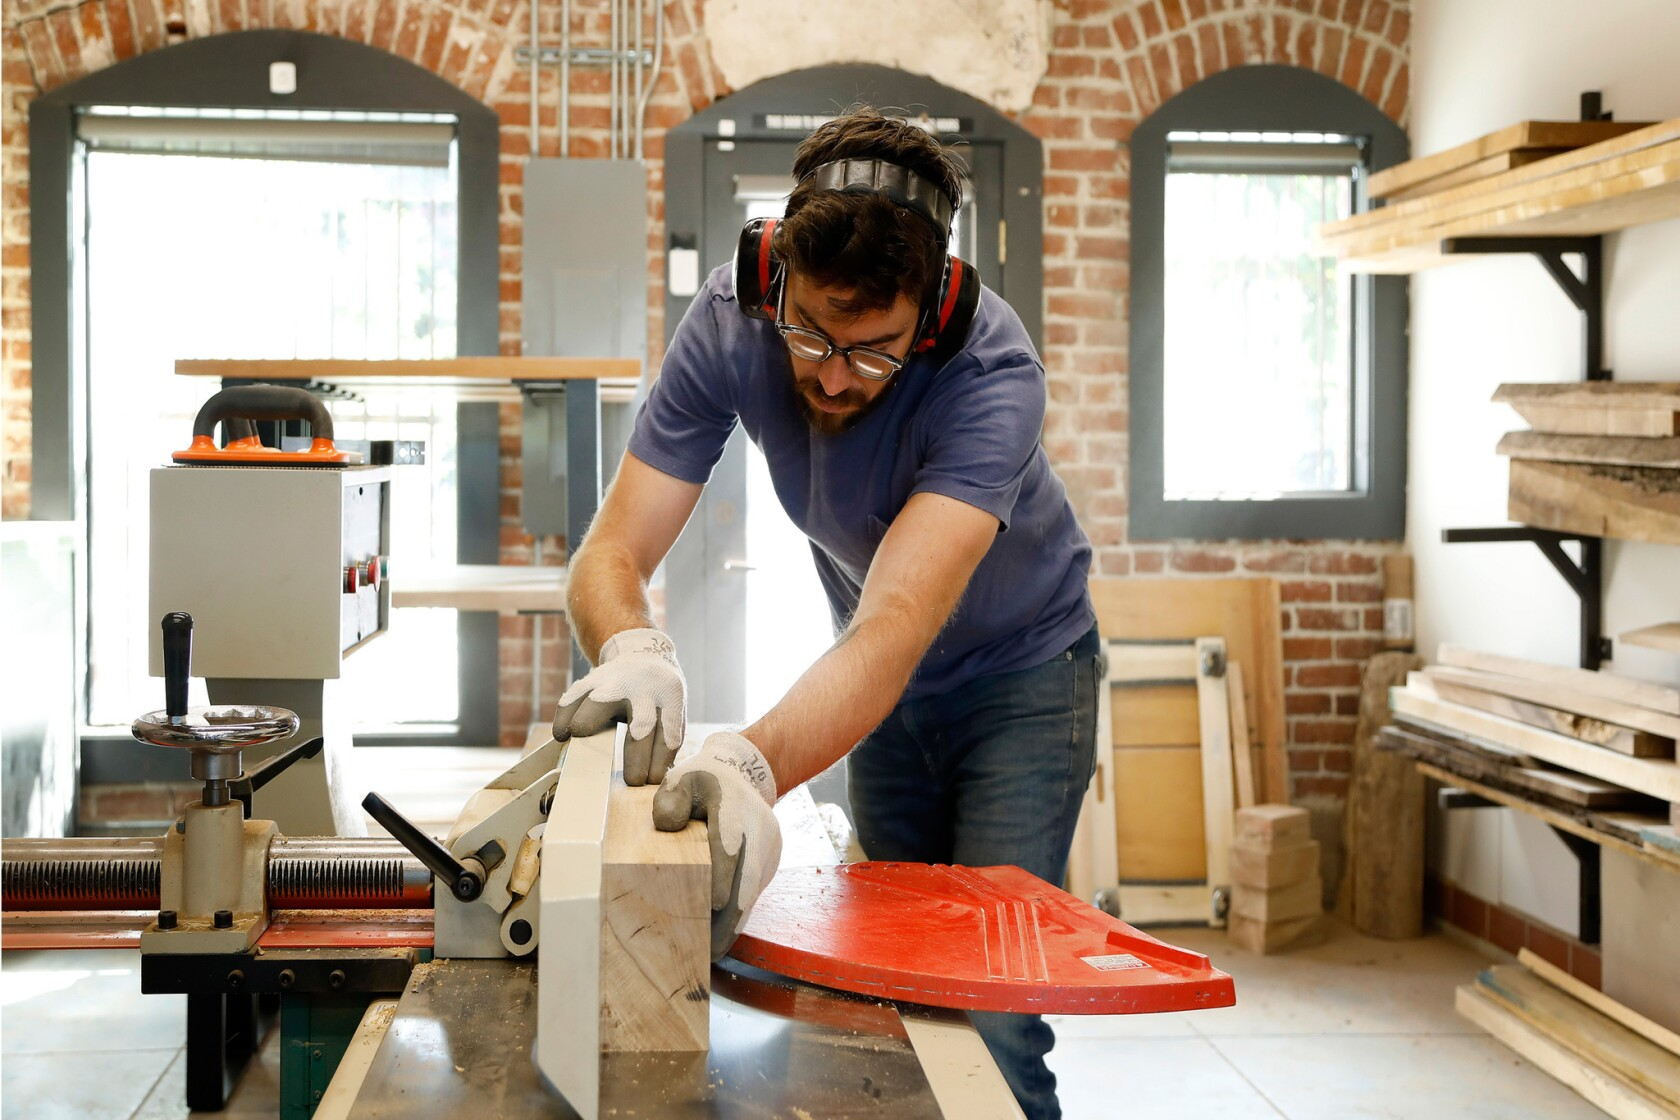 Makers After Two Years Spent Working In His Garage A Woodworker Distinguishes Himself Los Angeles Times